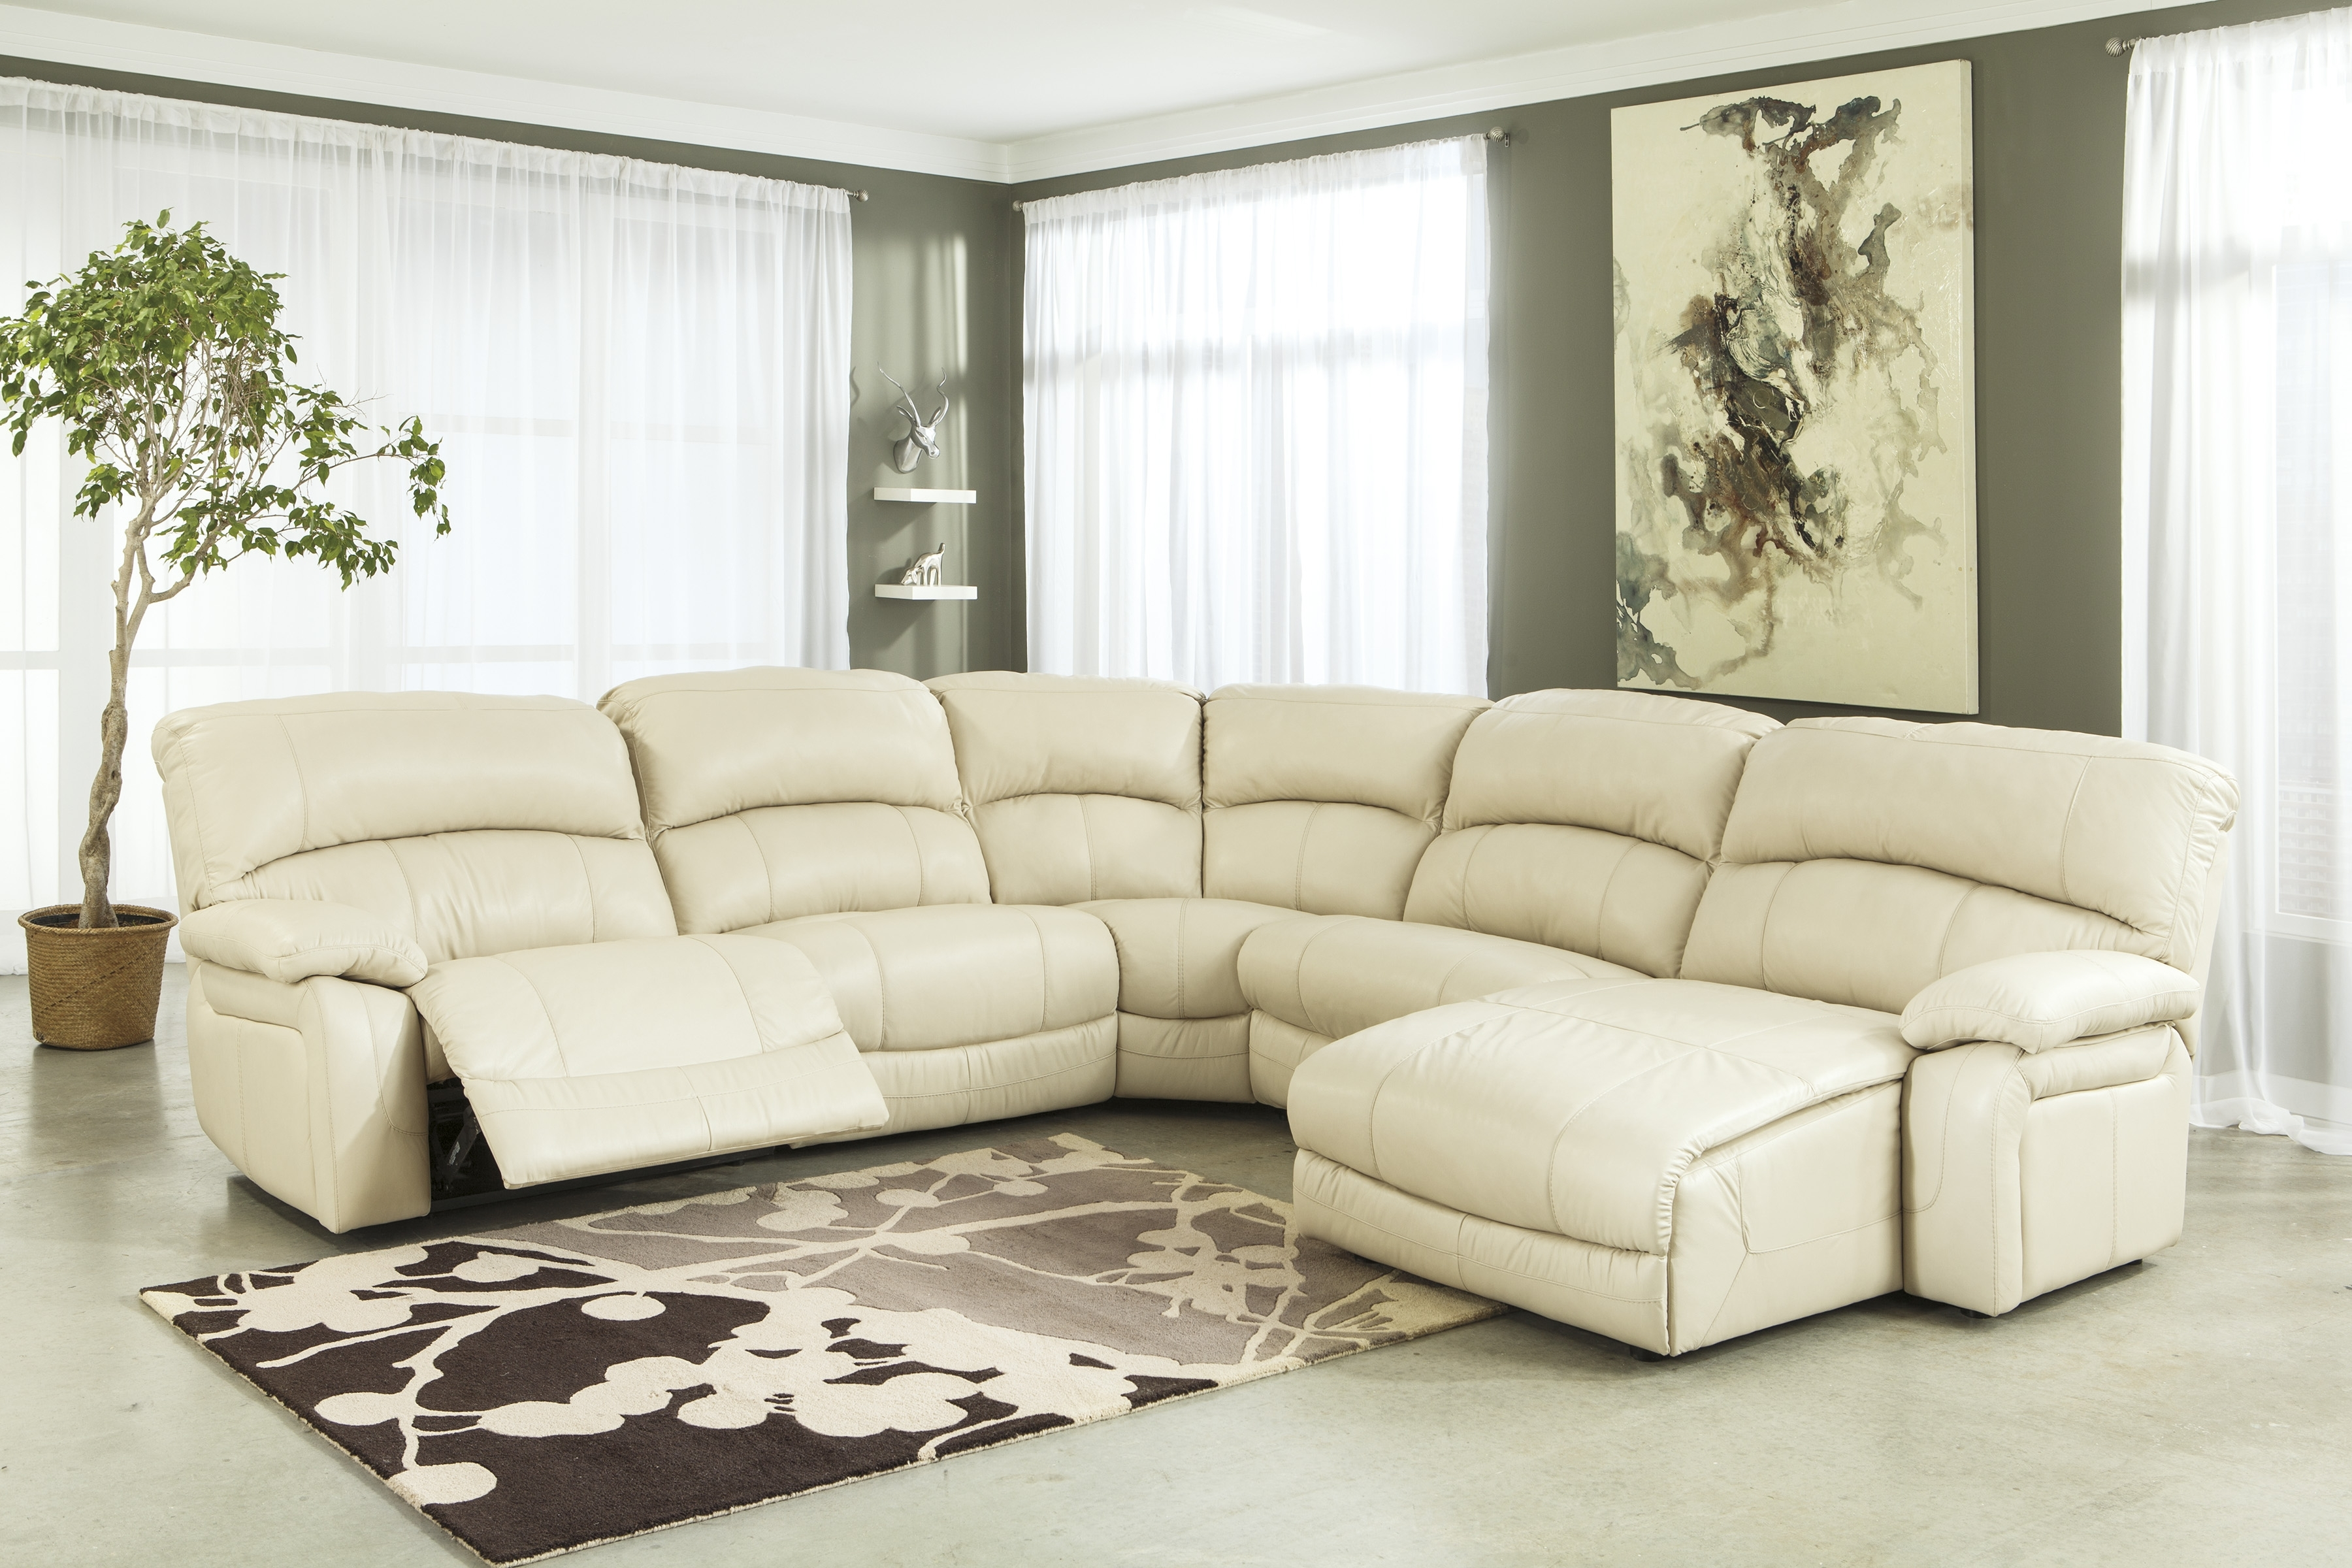 Most Up To Date Sectional Sofas With Power Recliners For One80 Power Recliner Reviews Power Reclining Sectional Reviews (View 9 of 15)